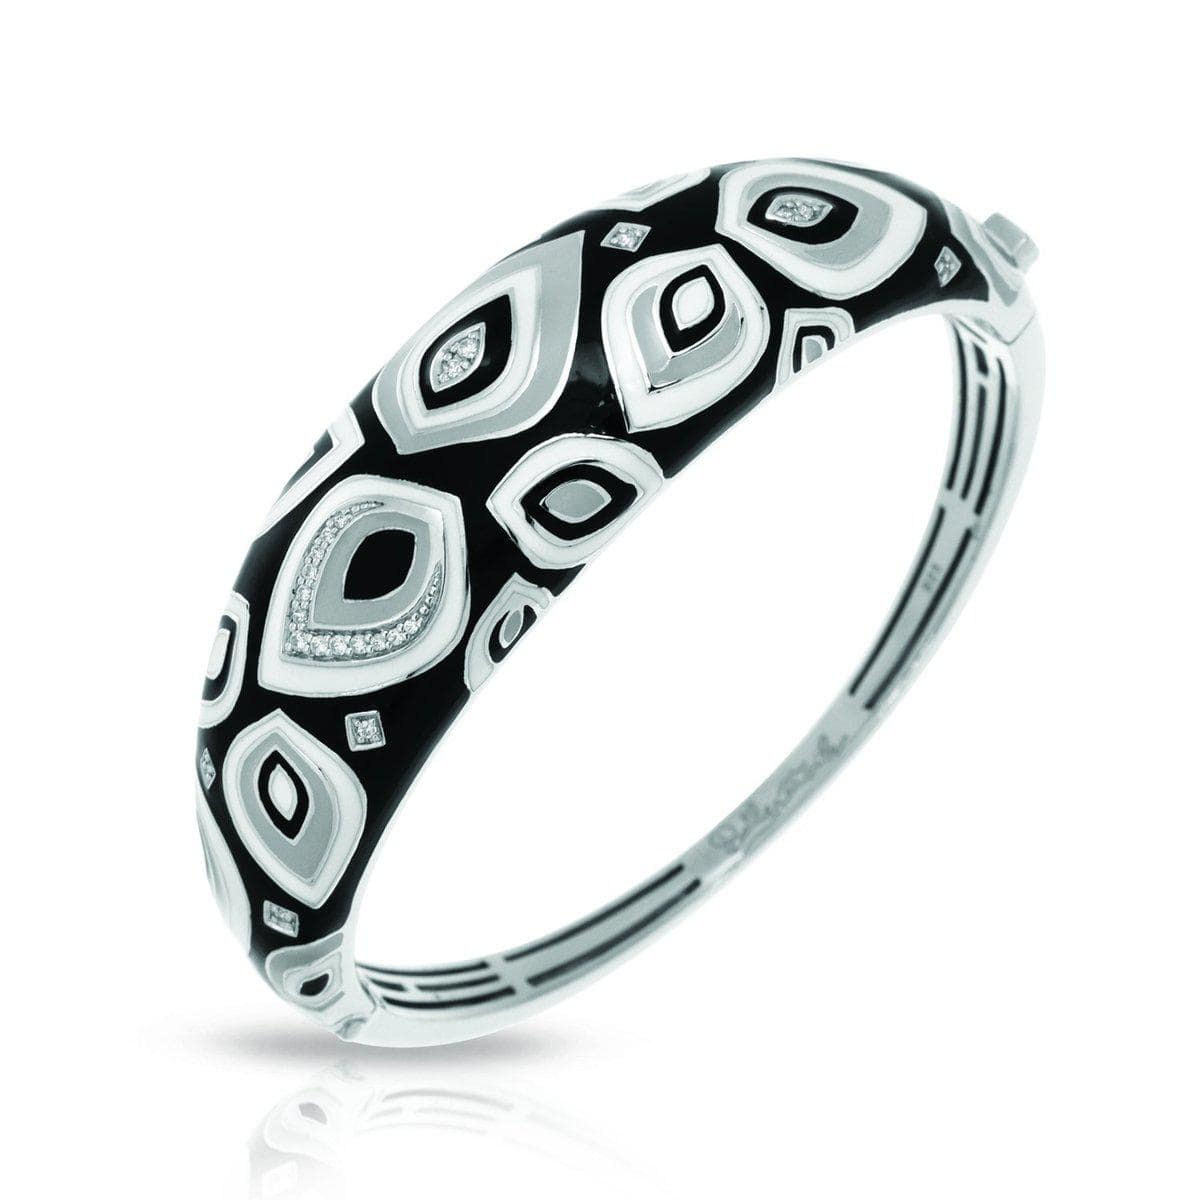 Zen Black and White Bangle-Belle Etoile-Renee Taylor Gallery